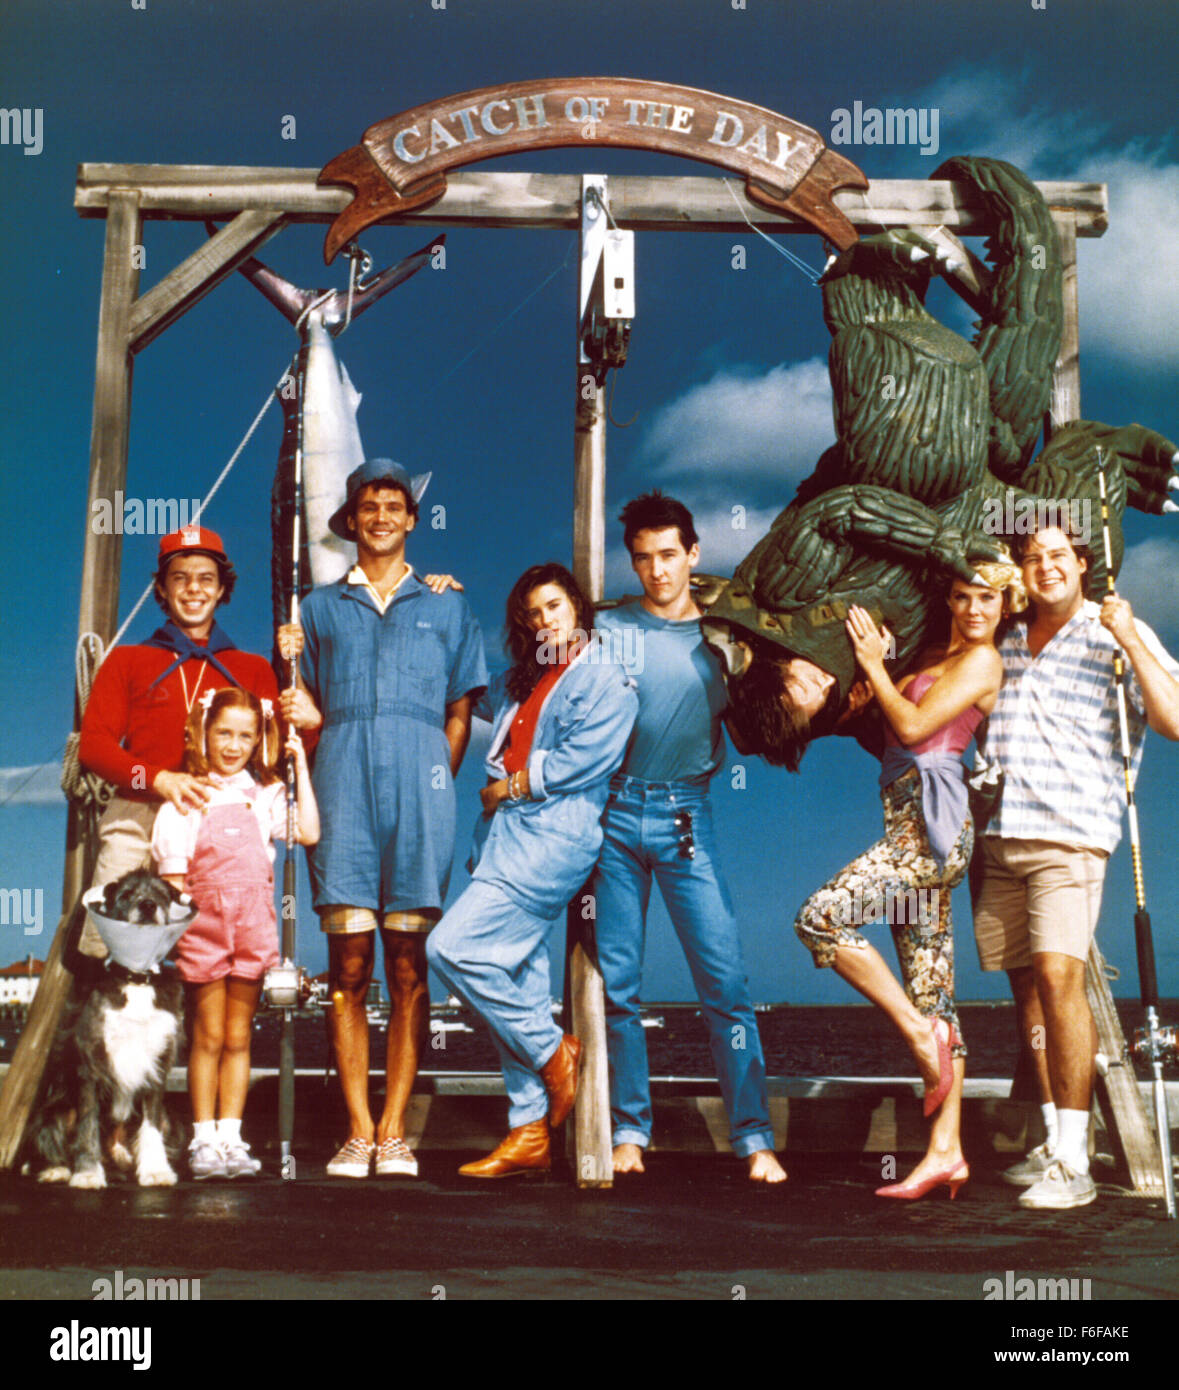 Release Date August 8 Movie Title One Crazy Summer